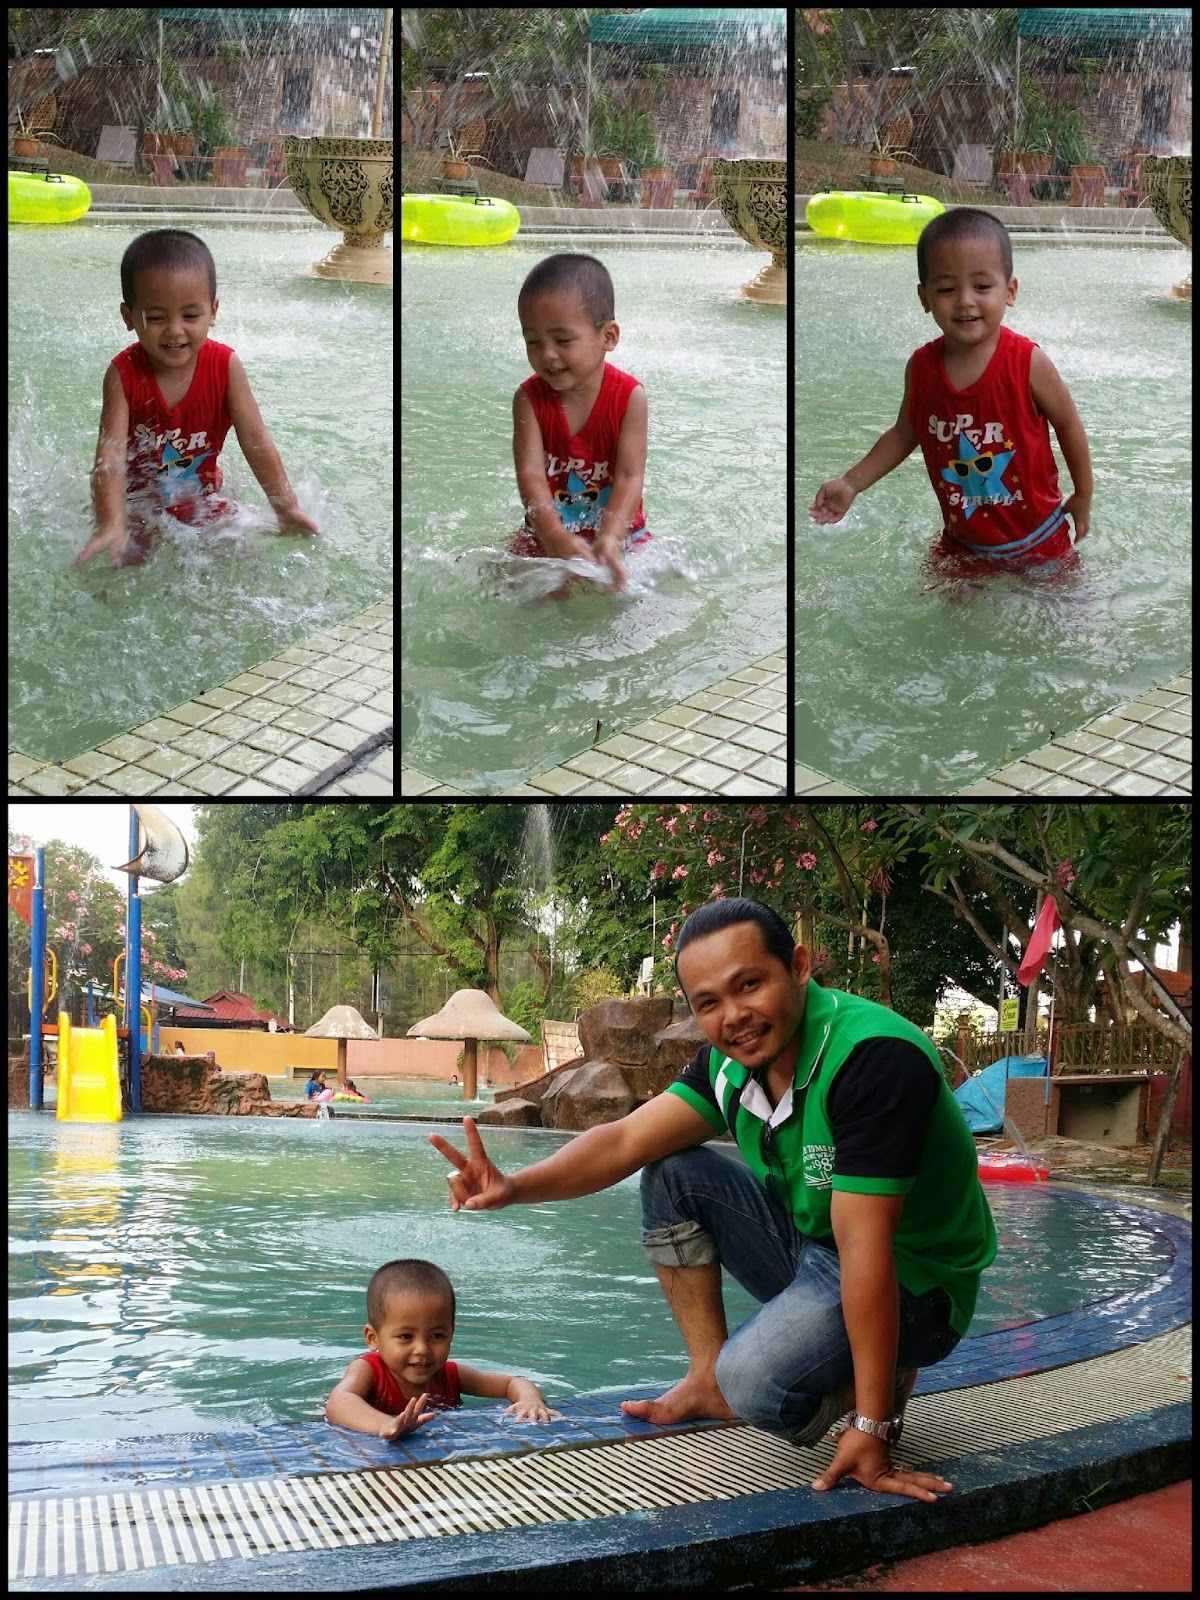 harga tiket water splash, lokasi water splash, splash taman indera, taman air di kelantan, taman tema air, water splash, water splash taman indera petra,